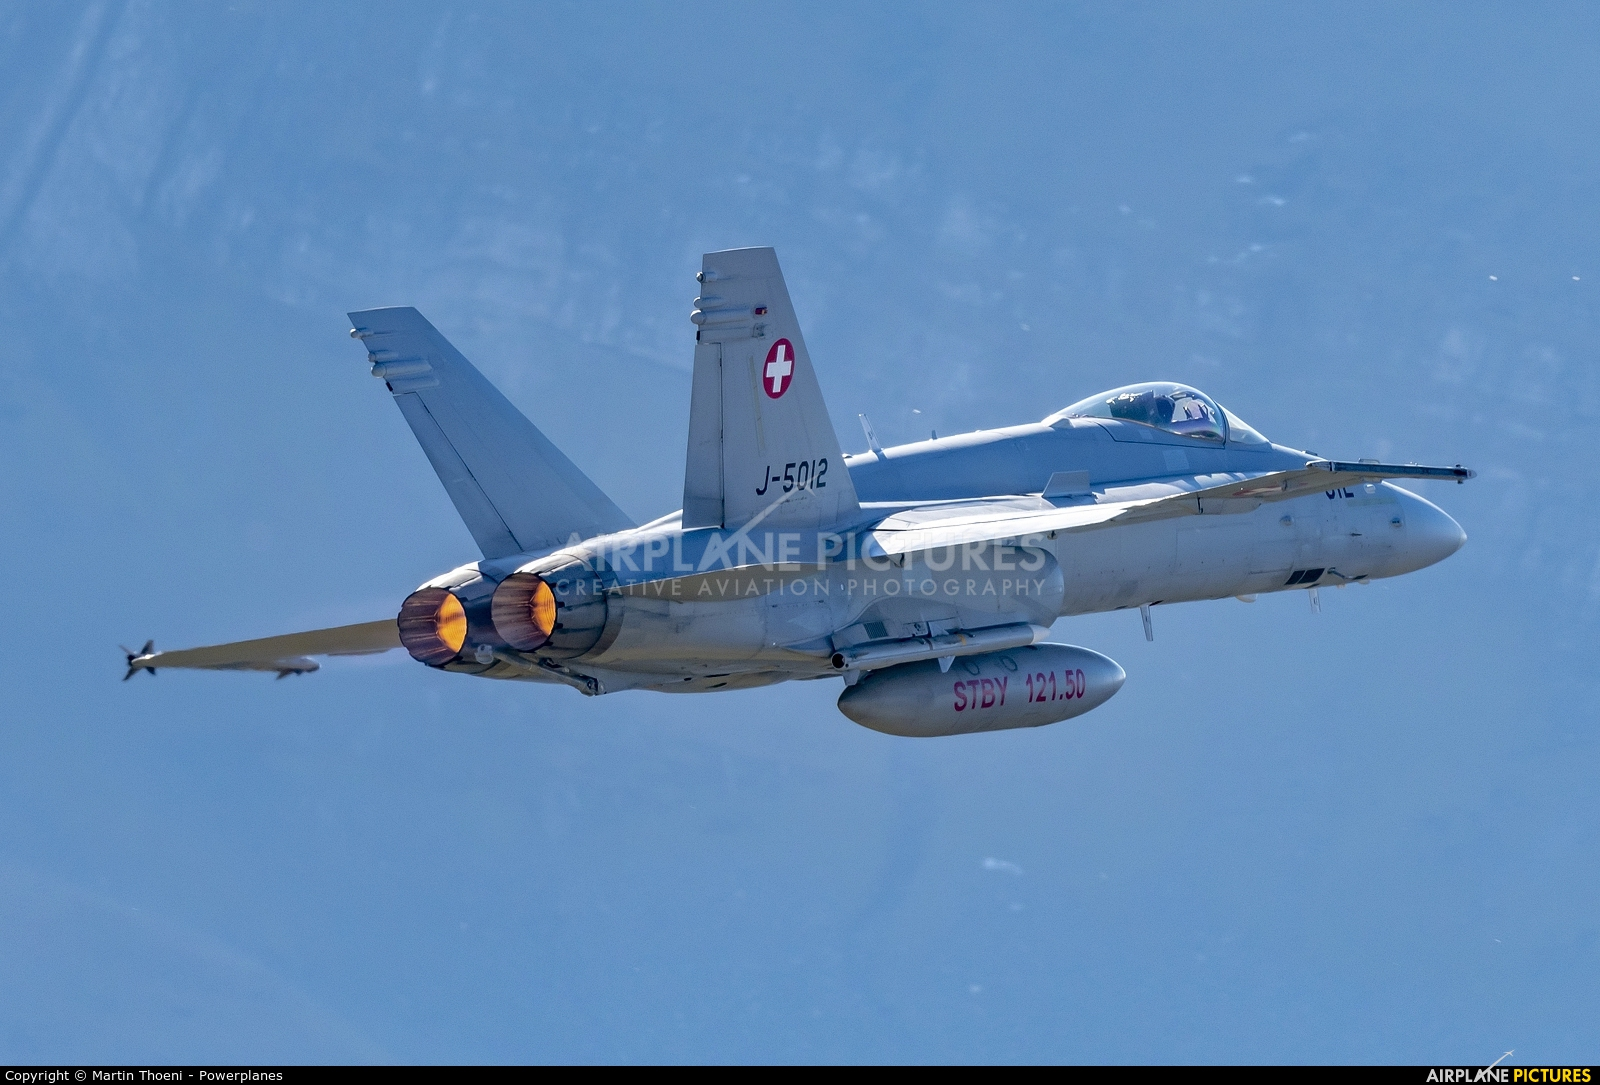 Switzerland - Air Force J-5012 aircraft at Axalp - Ebenfluh Range